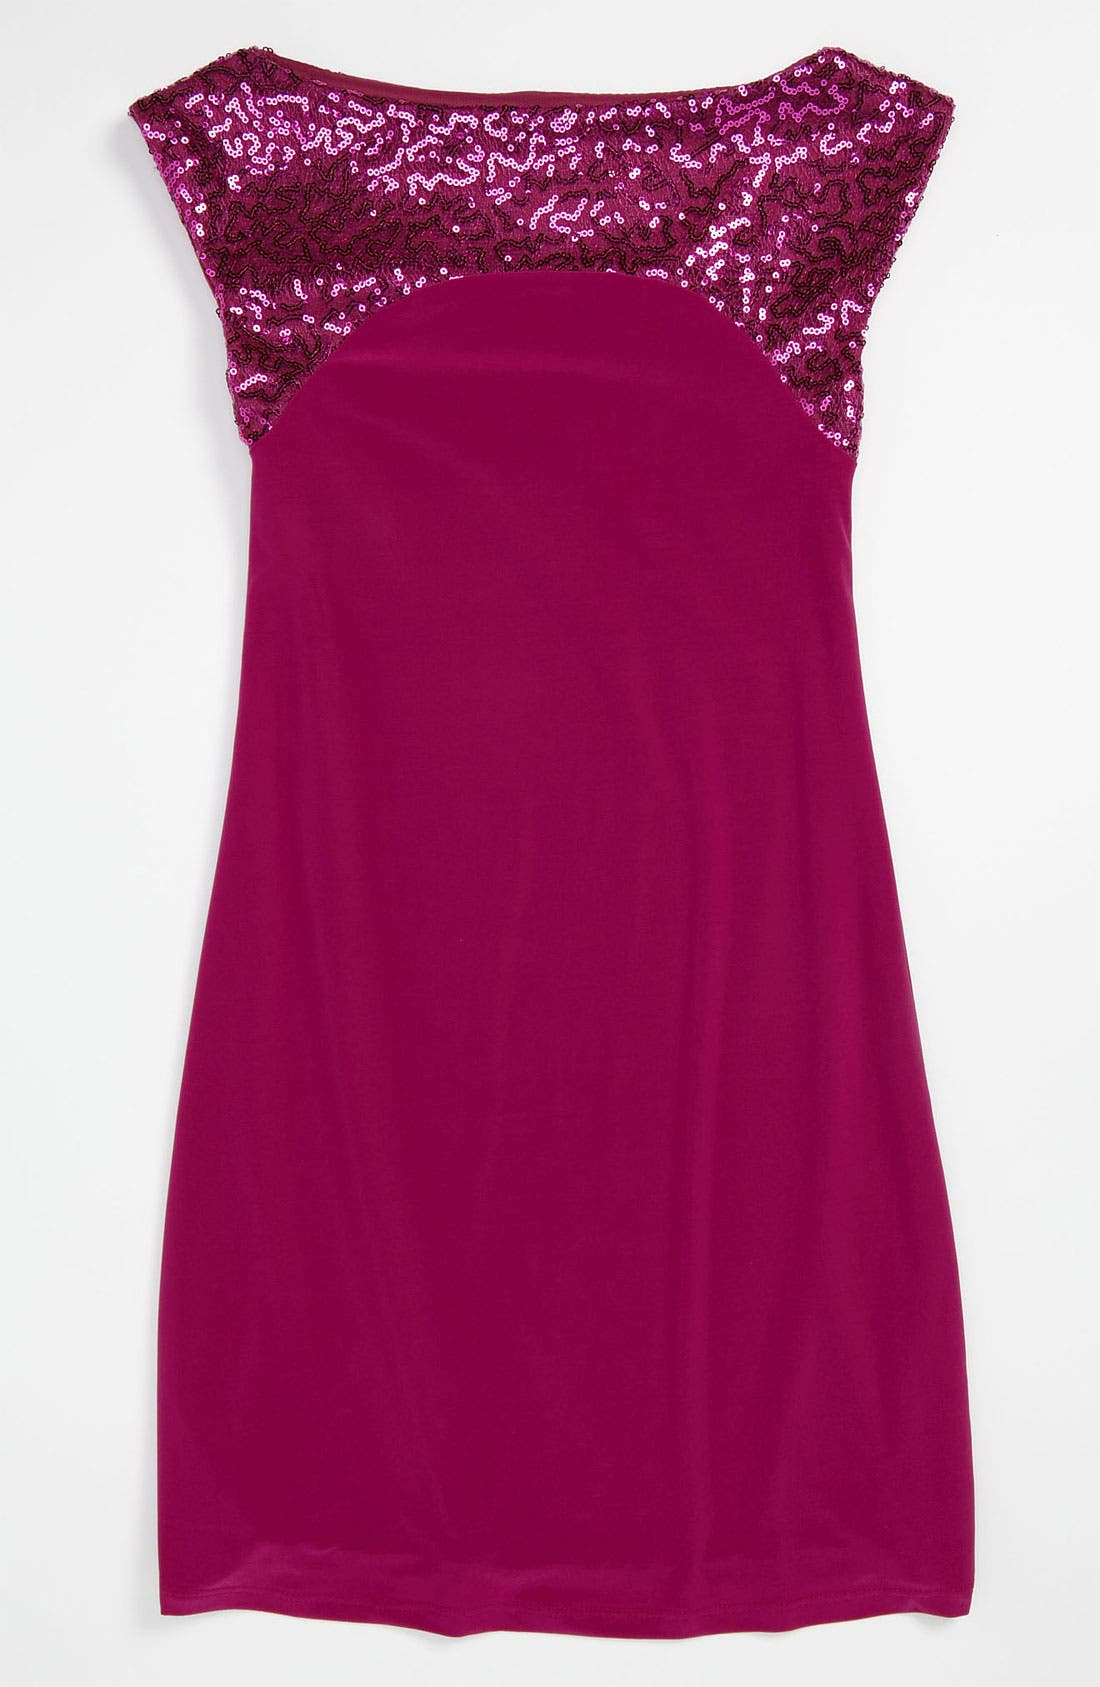 Alternate Image 1 Selected - Un Deux Trois Sequin Dress (Big Girls)